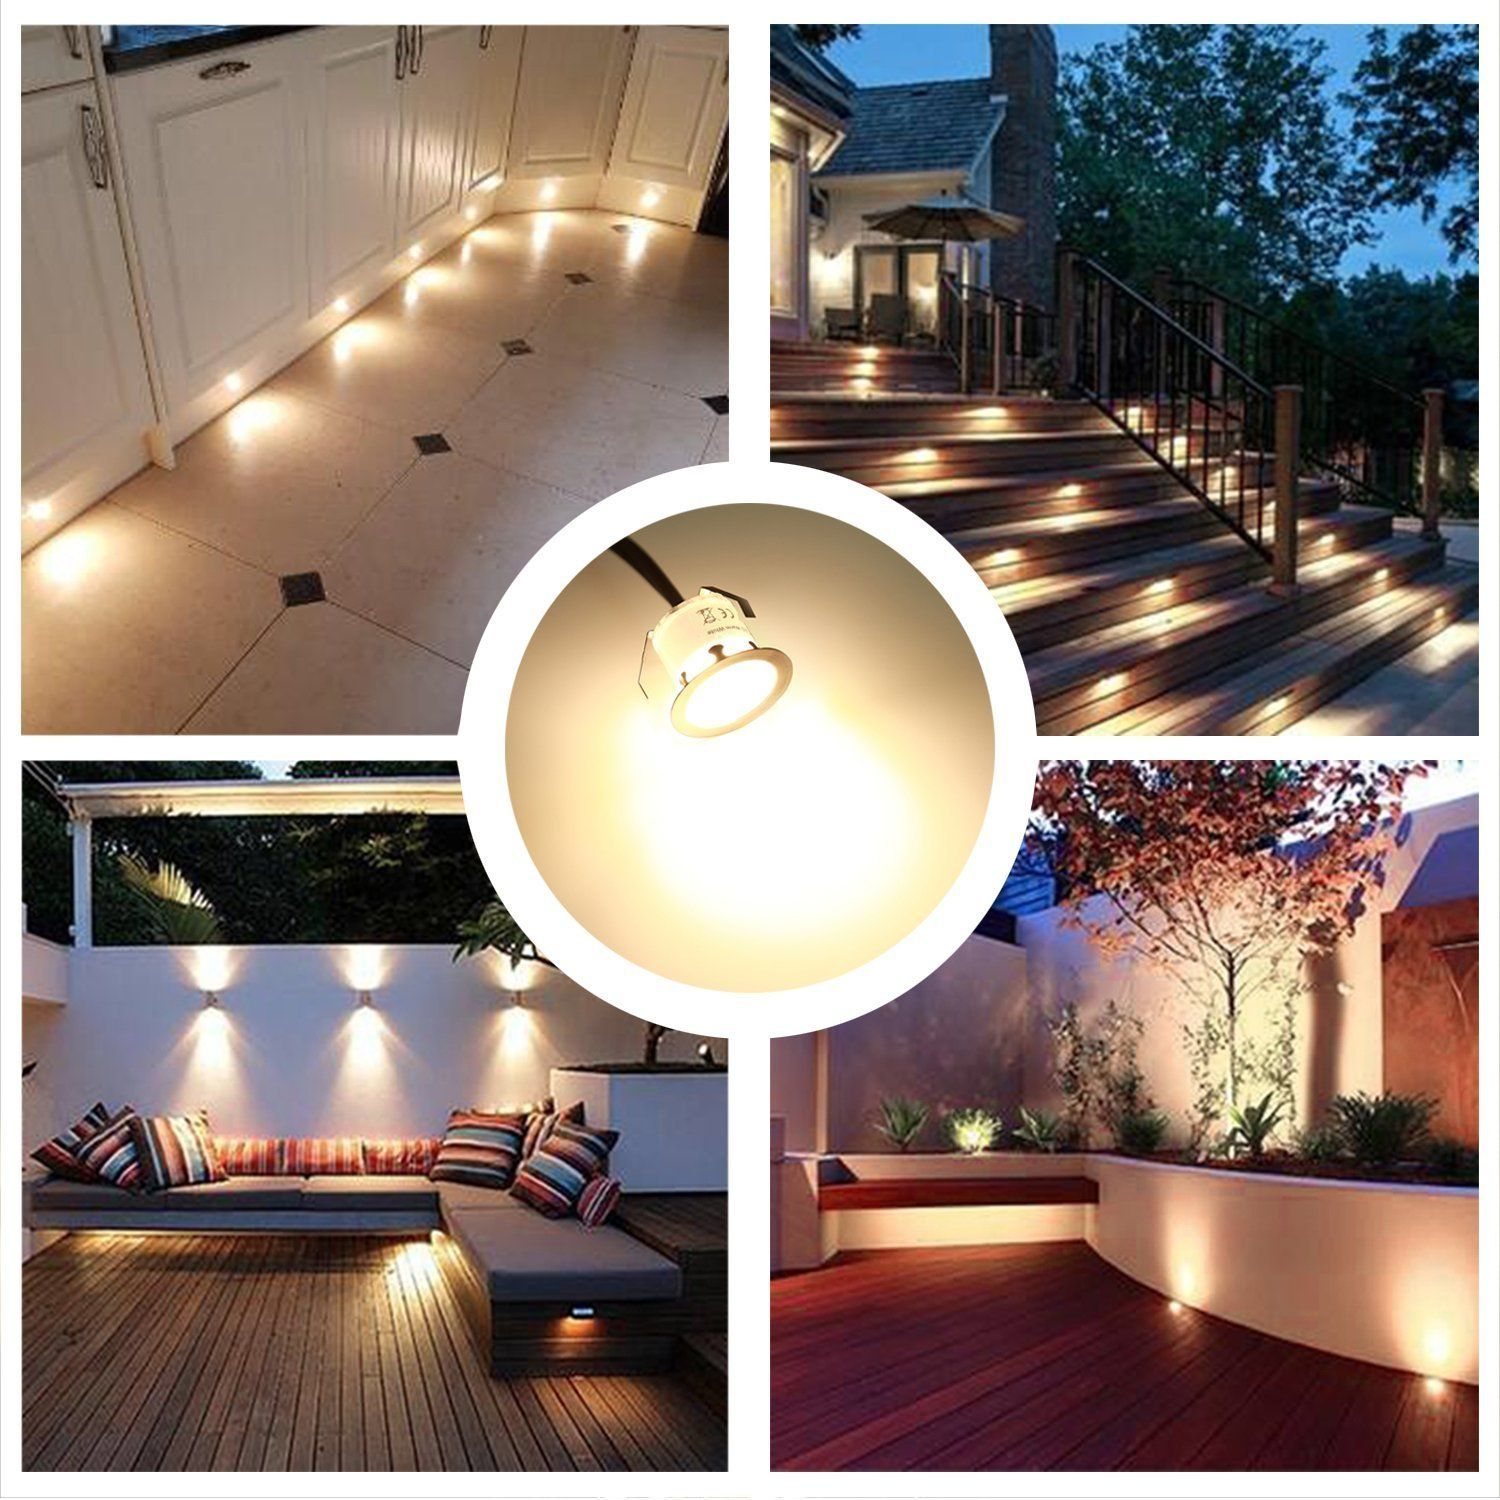 Recessed Led Deck Lighting Kits 12v Low Voltage Warm White X3c6 22mm Waterproof Ip 67 Led In Led Deck Lighting Landscape Lighting Kits Led Landscape Lighting